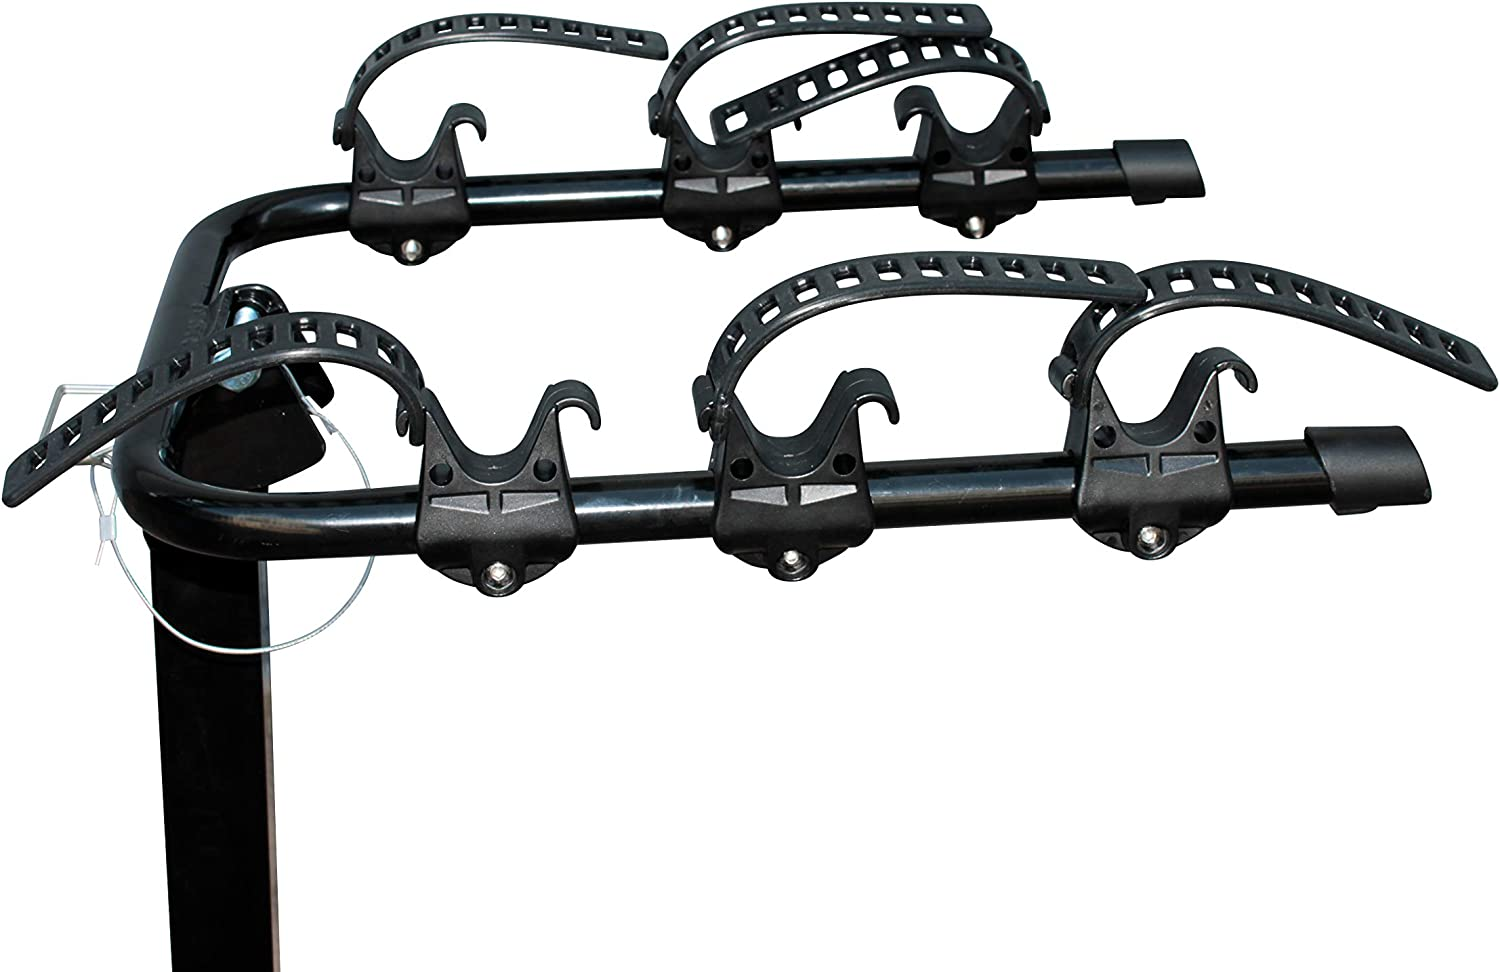 Useful Car or Truck Hitch Mount Bike Rack for Easy Transport of Up to Three Bicycles Hitch Mounted Bicycle Carrier